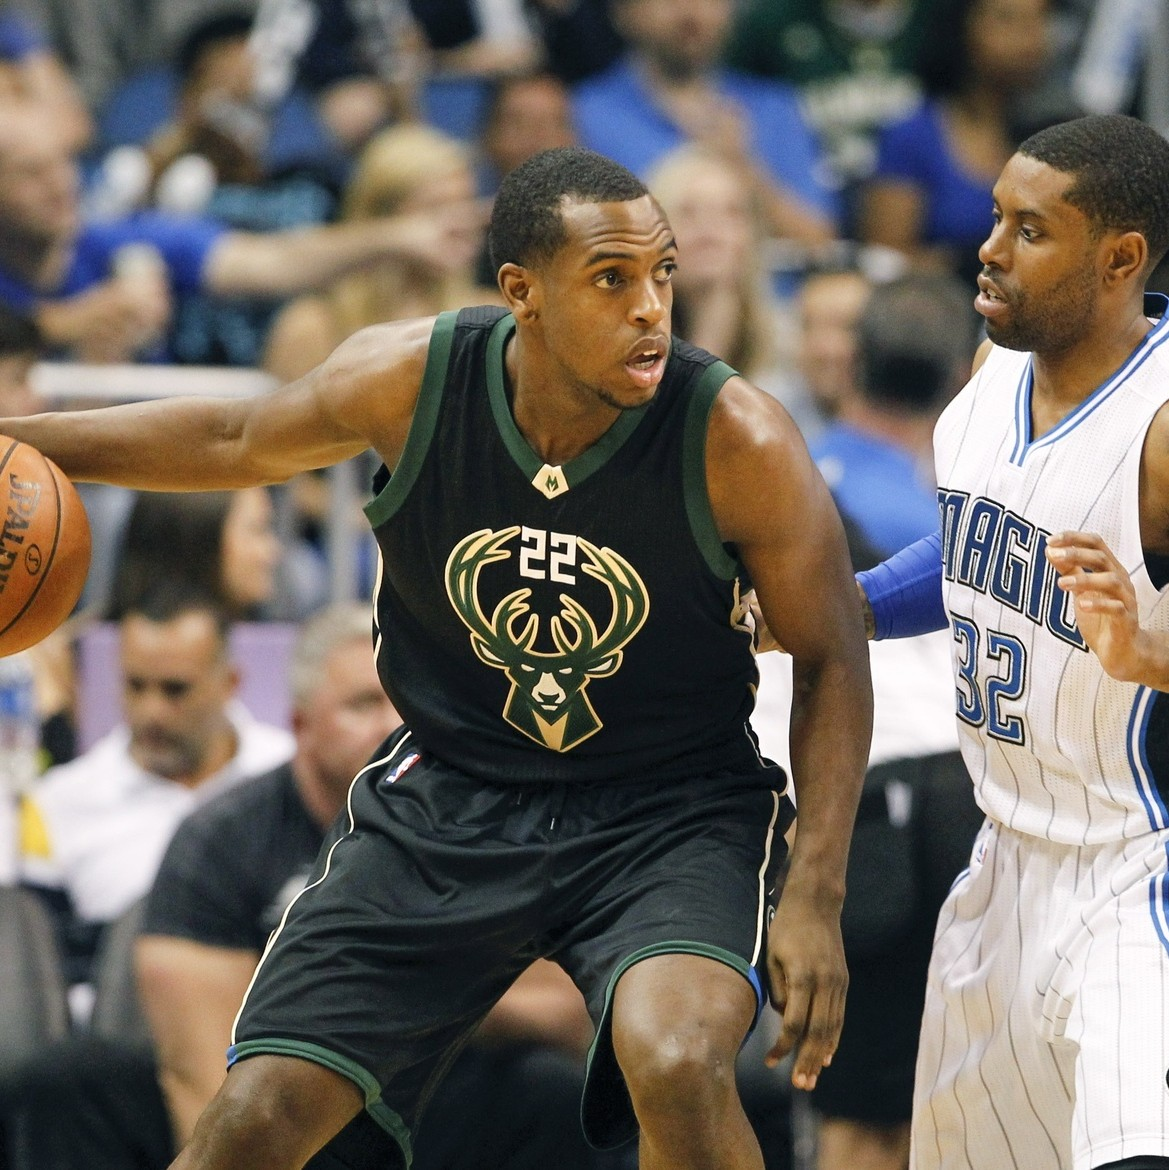 Khris-middleton-has-the-bucks-slowing-down-and-heating-up-1490158011.jpg?crop=0.6842105263157895xw:1xh;0